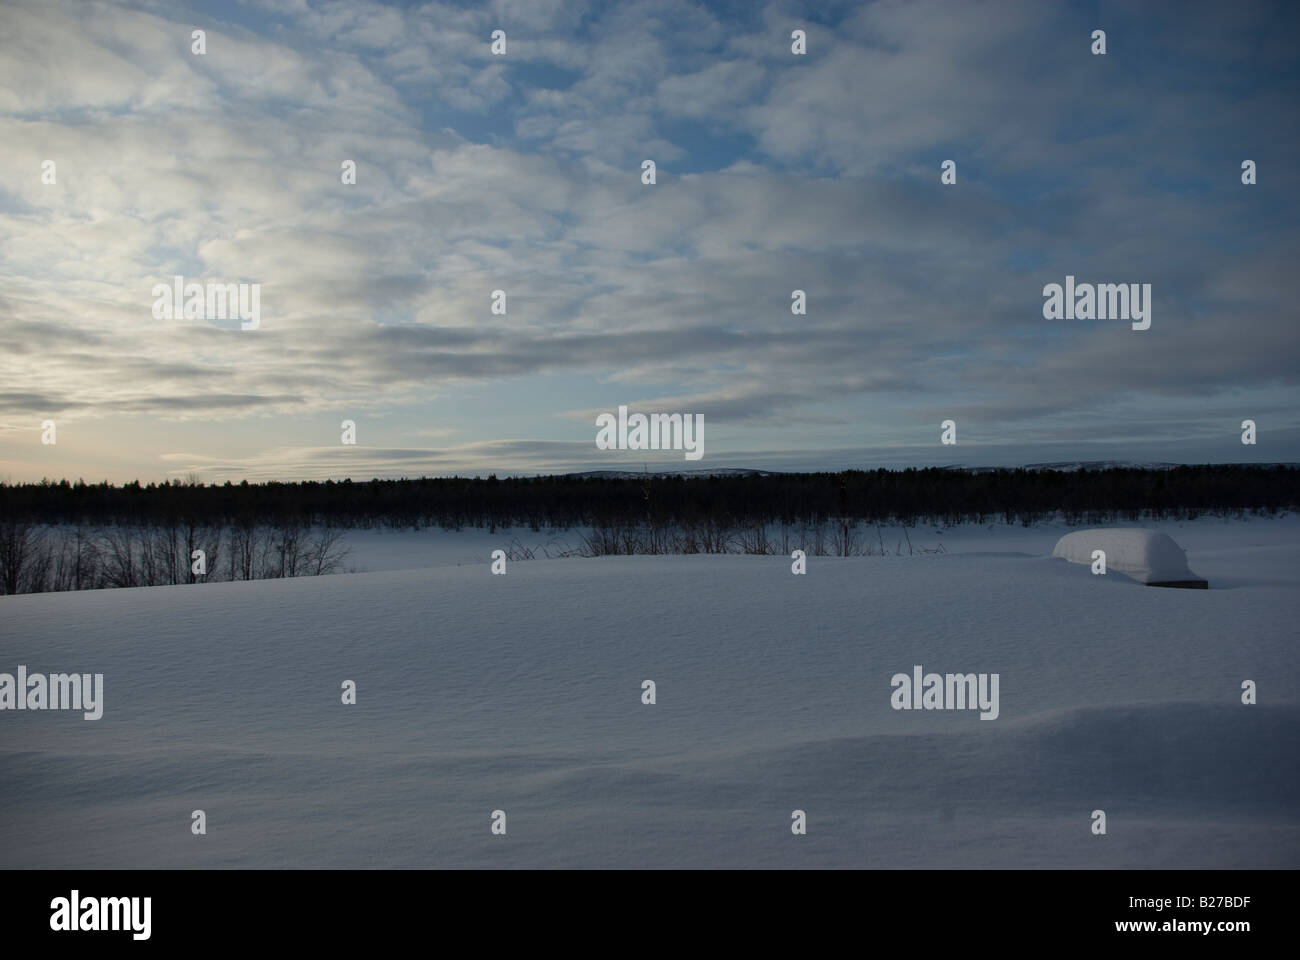 A bench covered in snow, with Tornio river and fells on Sweden's side of the river in the background - Stock Image